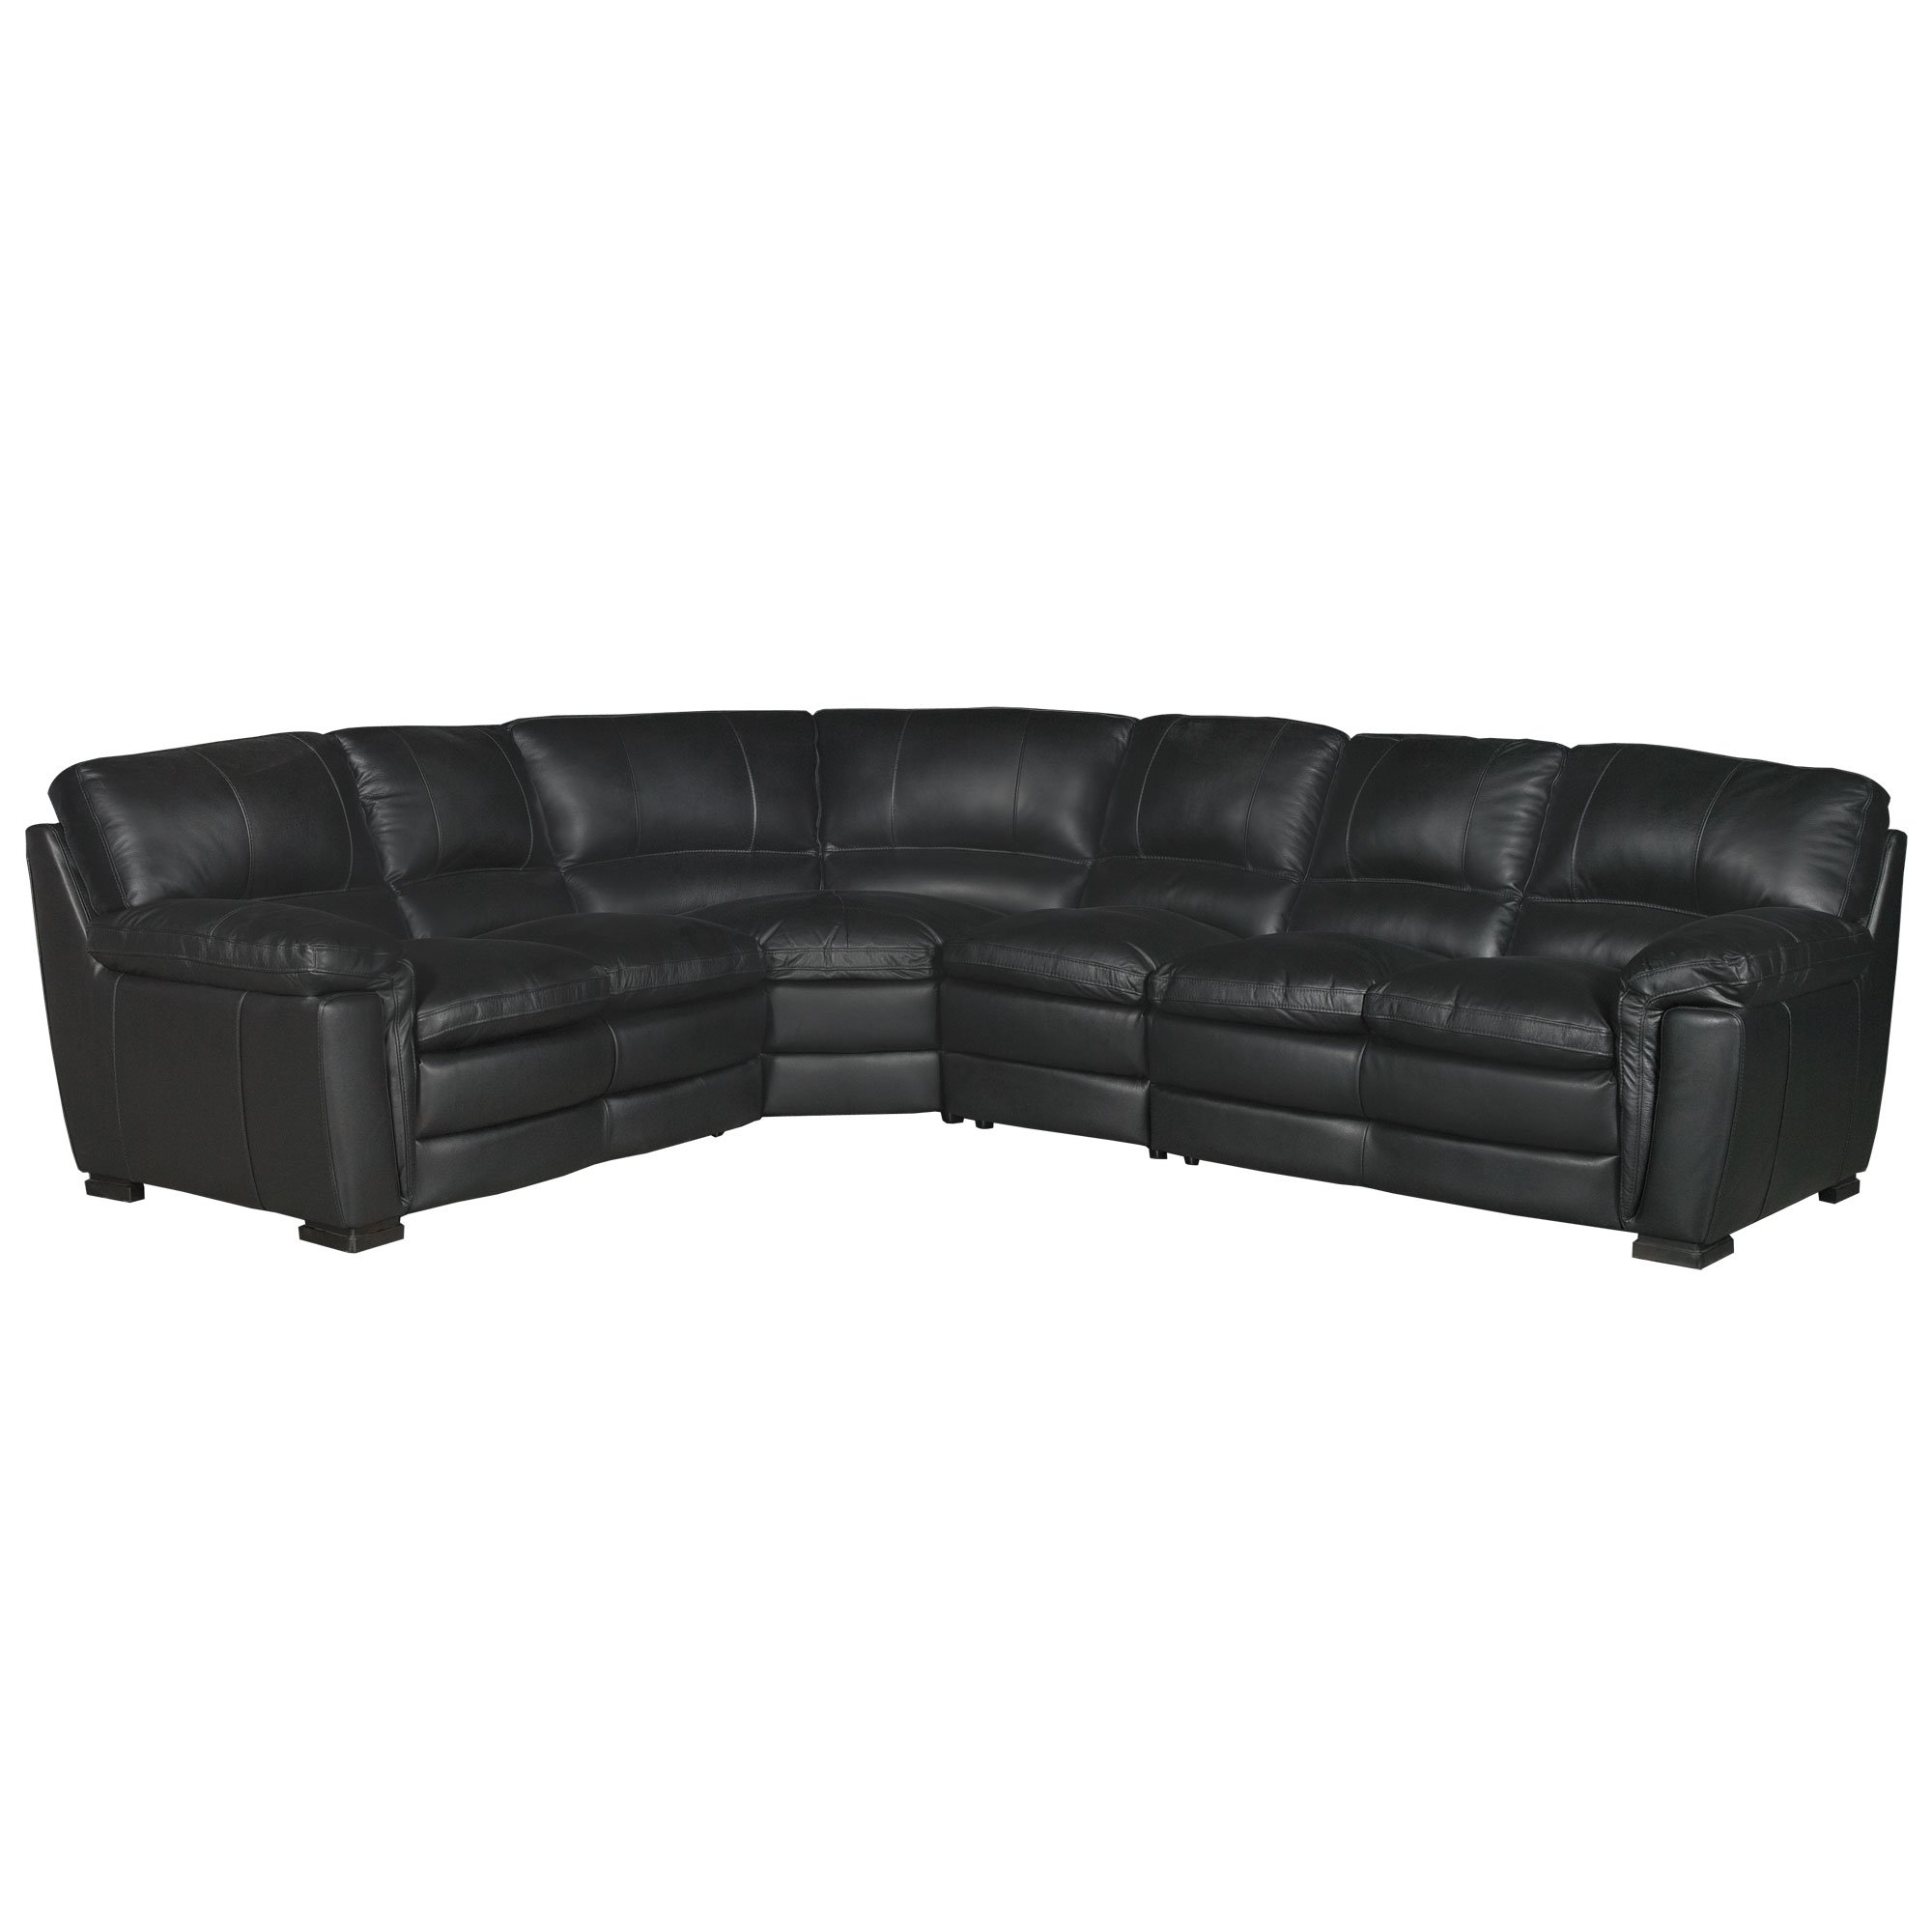 living room black leather sectional suite for sale contemporary 4 piece sofa tanner rc willey furniture store